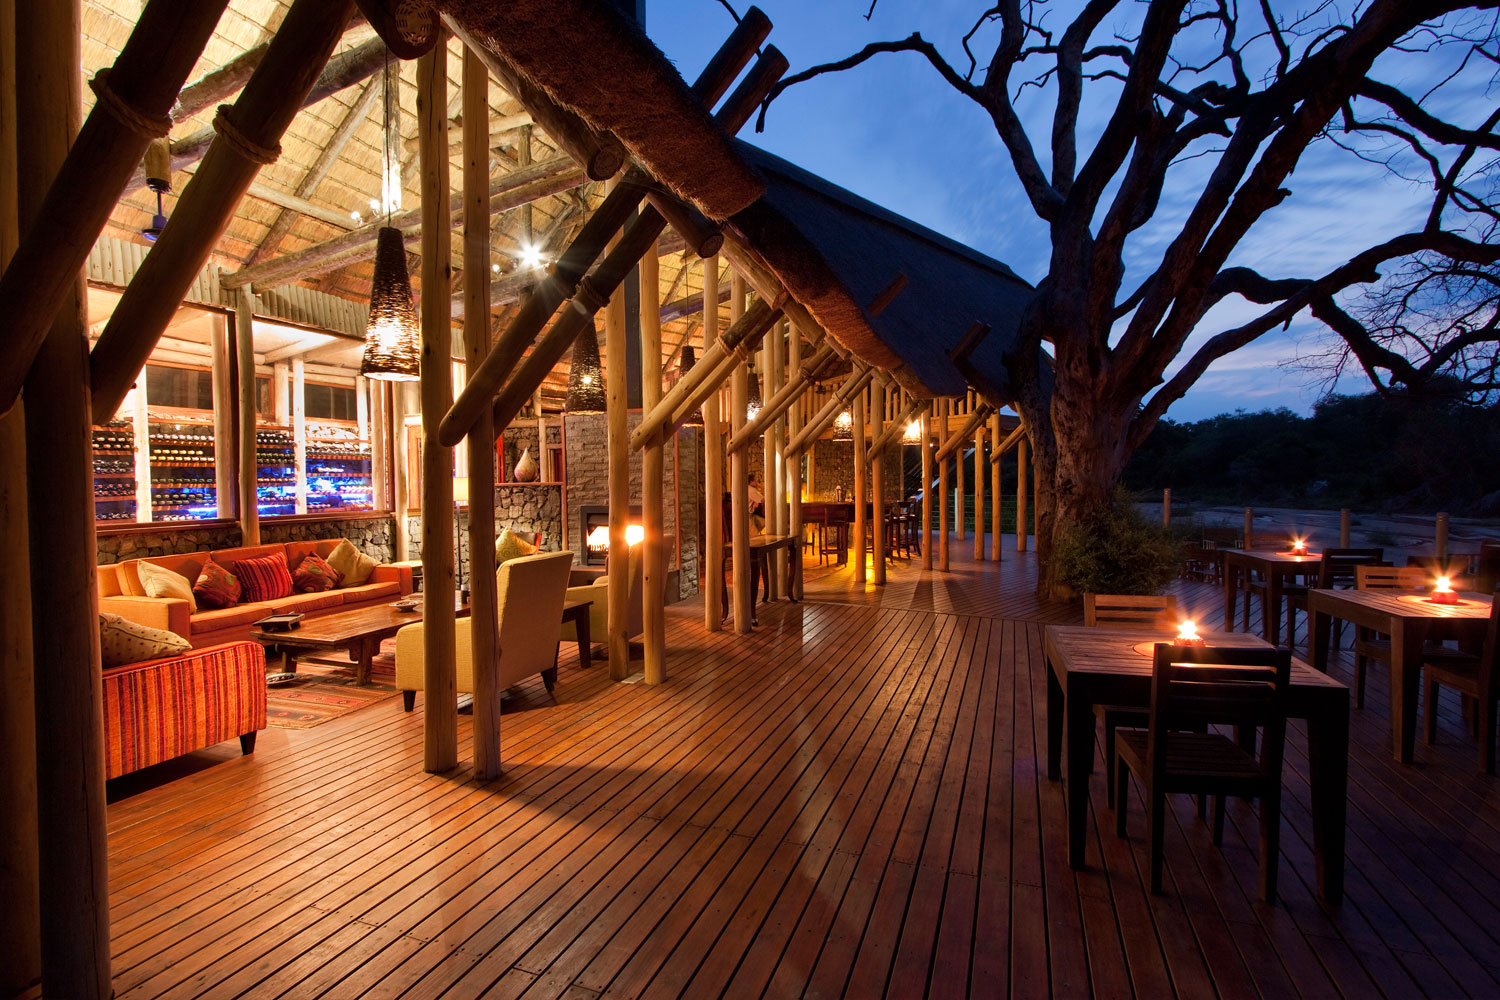 safari lodges in south africa isibindi africa lodgesisibindiSafari Lodge Zuid Afrika.htm #19